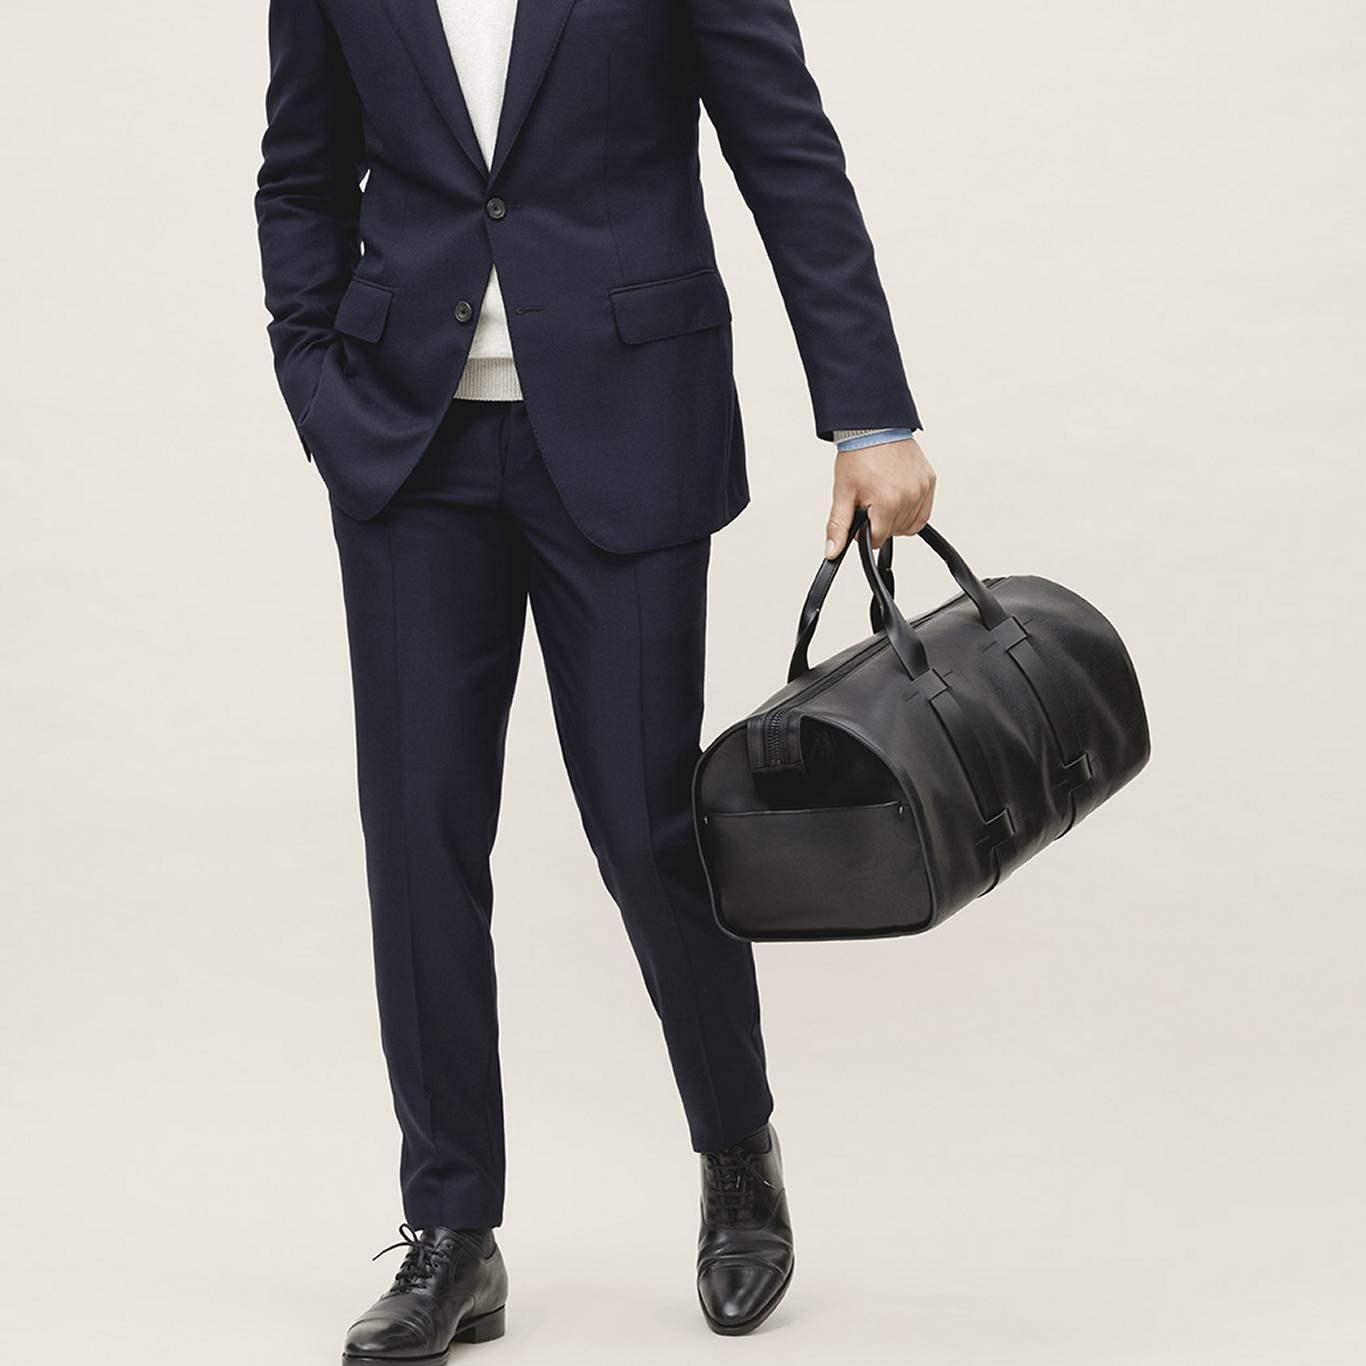 Navy suit and minimal men's black leather bag